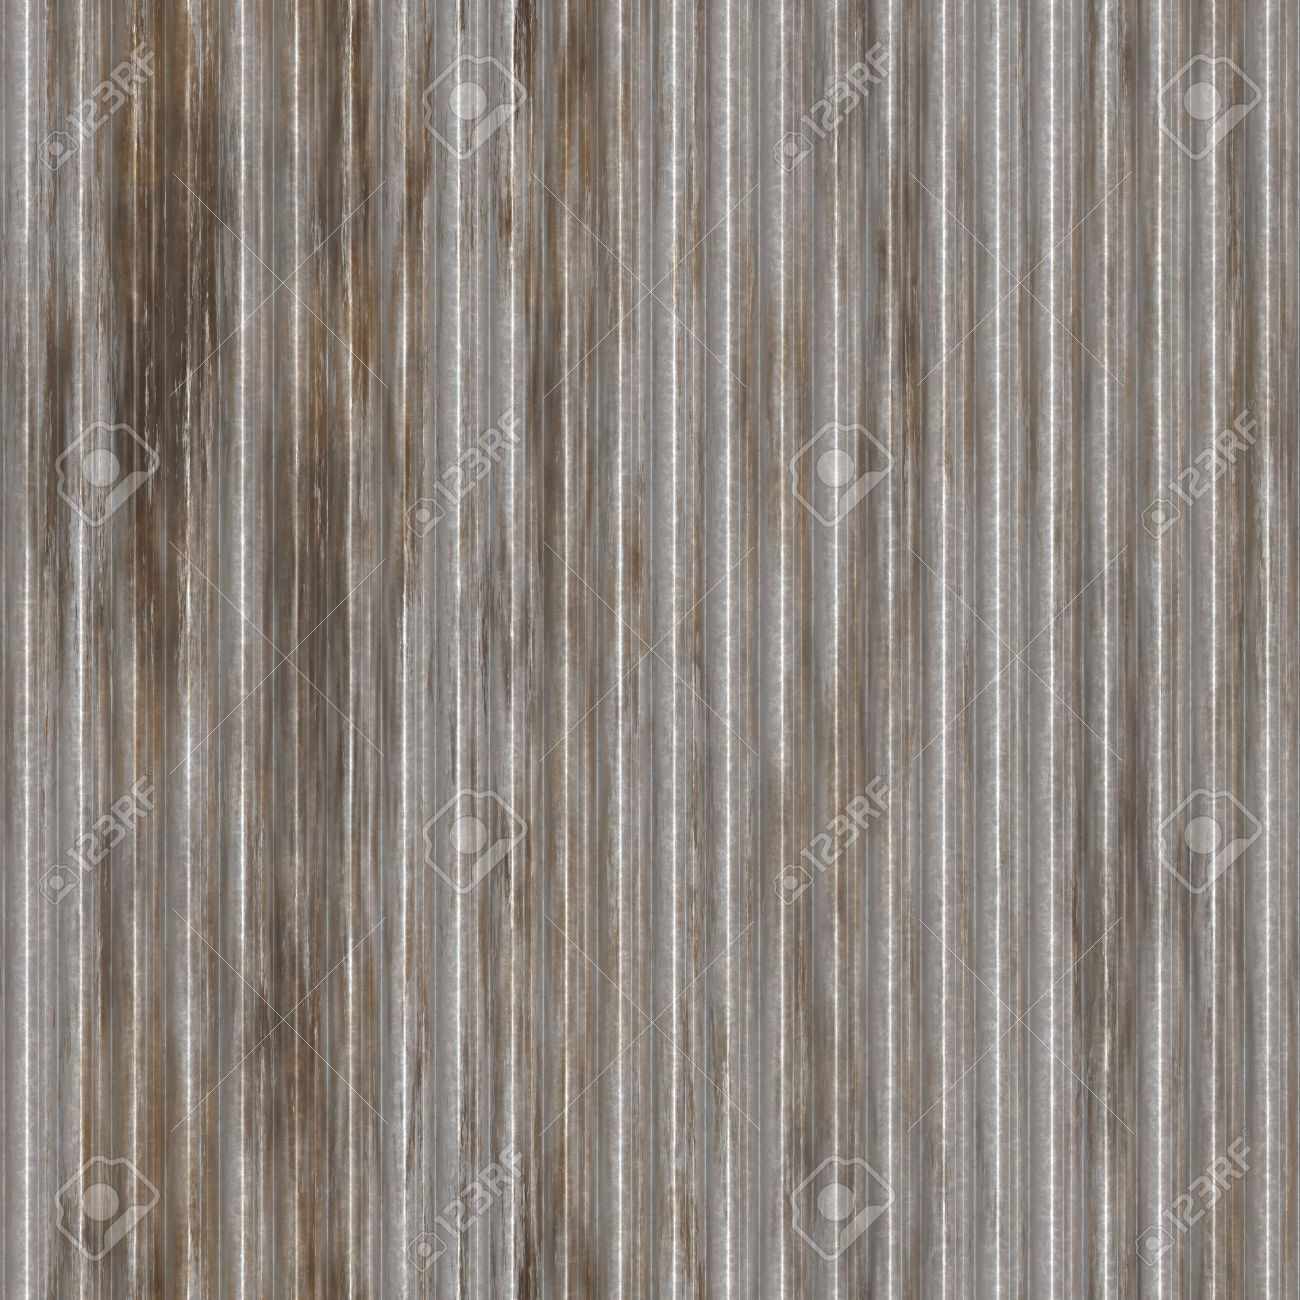 Corrugated metal ridged surface with corrosion seamless texture Stock Photo - 5641615